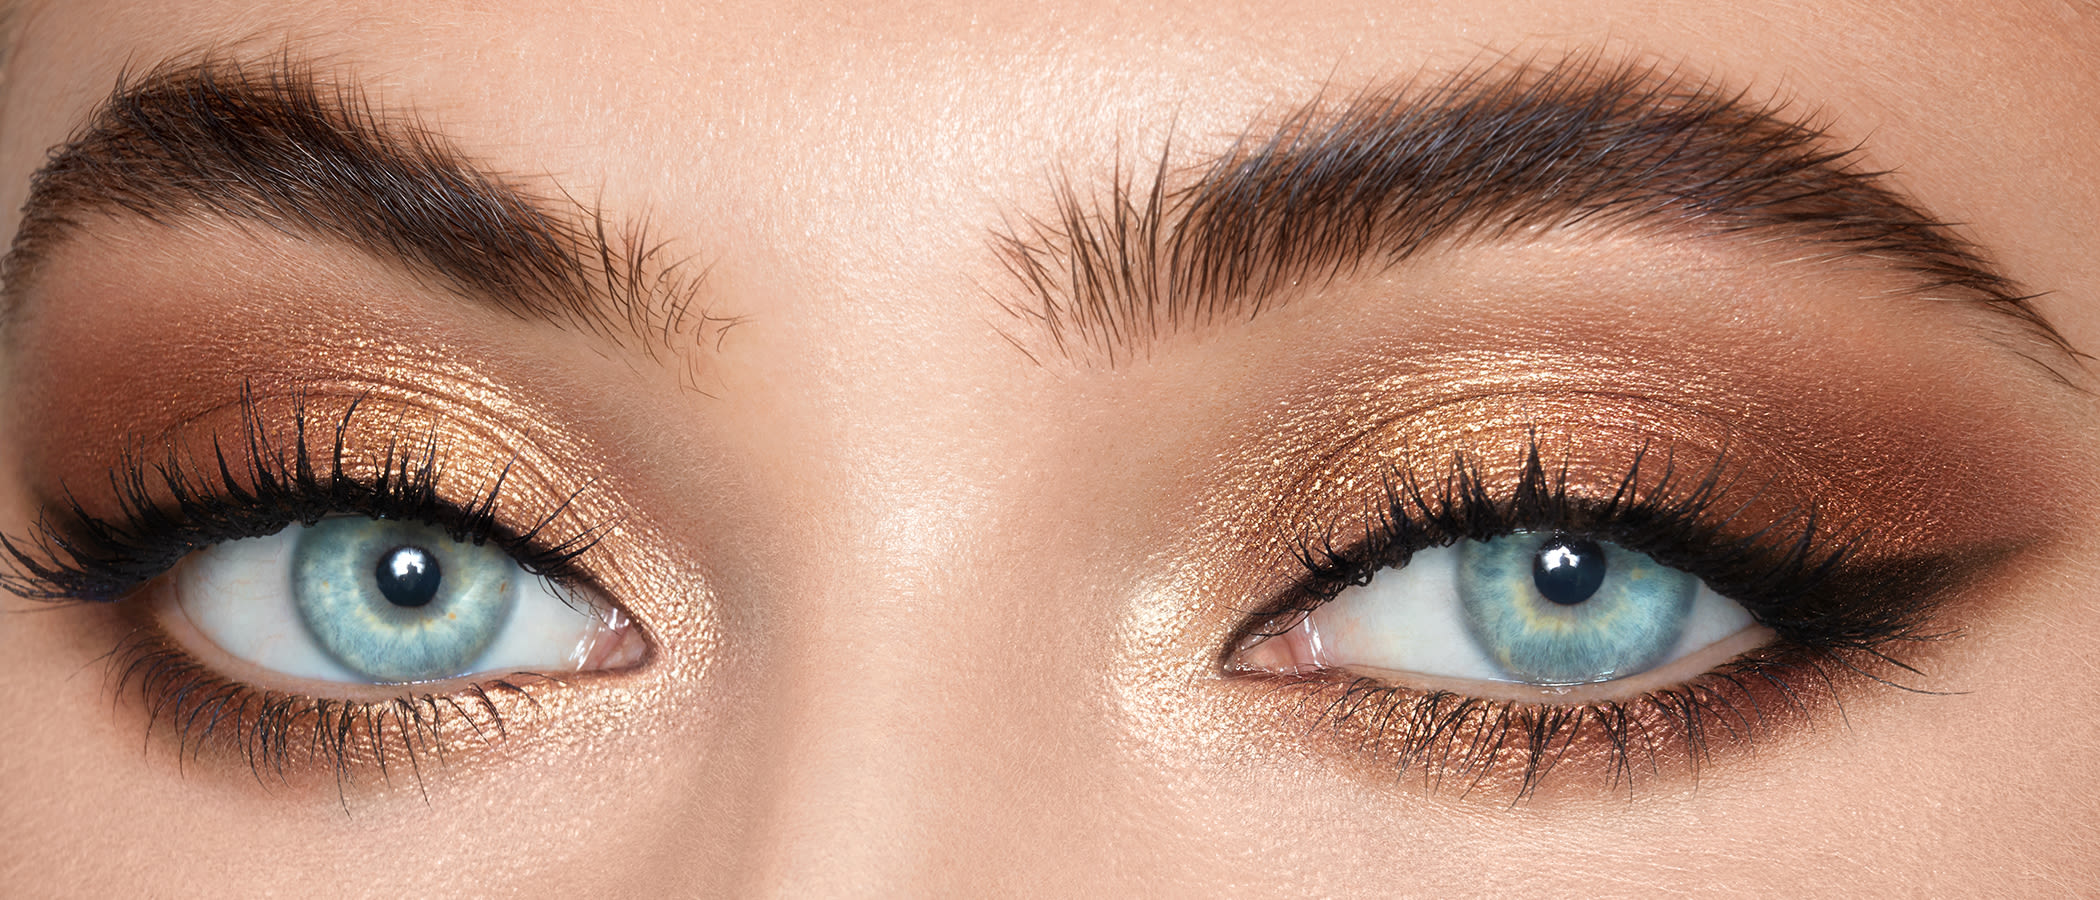 Charlotte Tilbury Party Makeup Guides